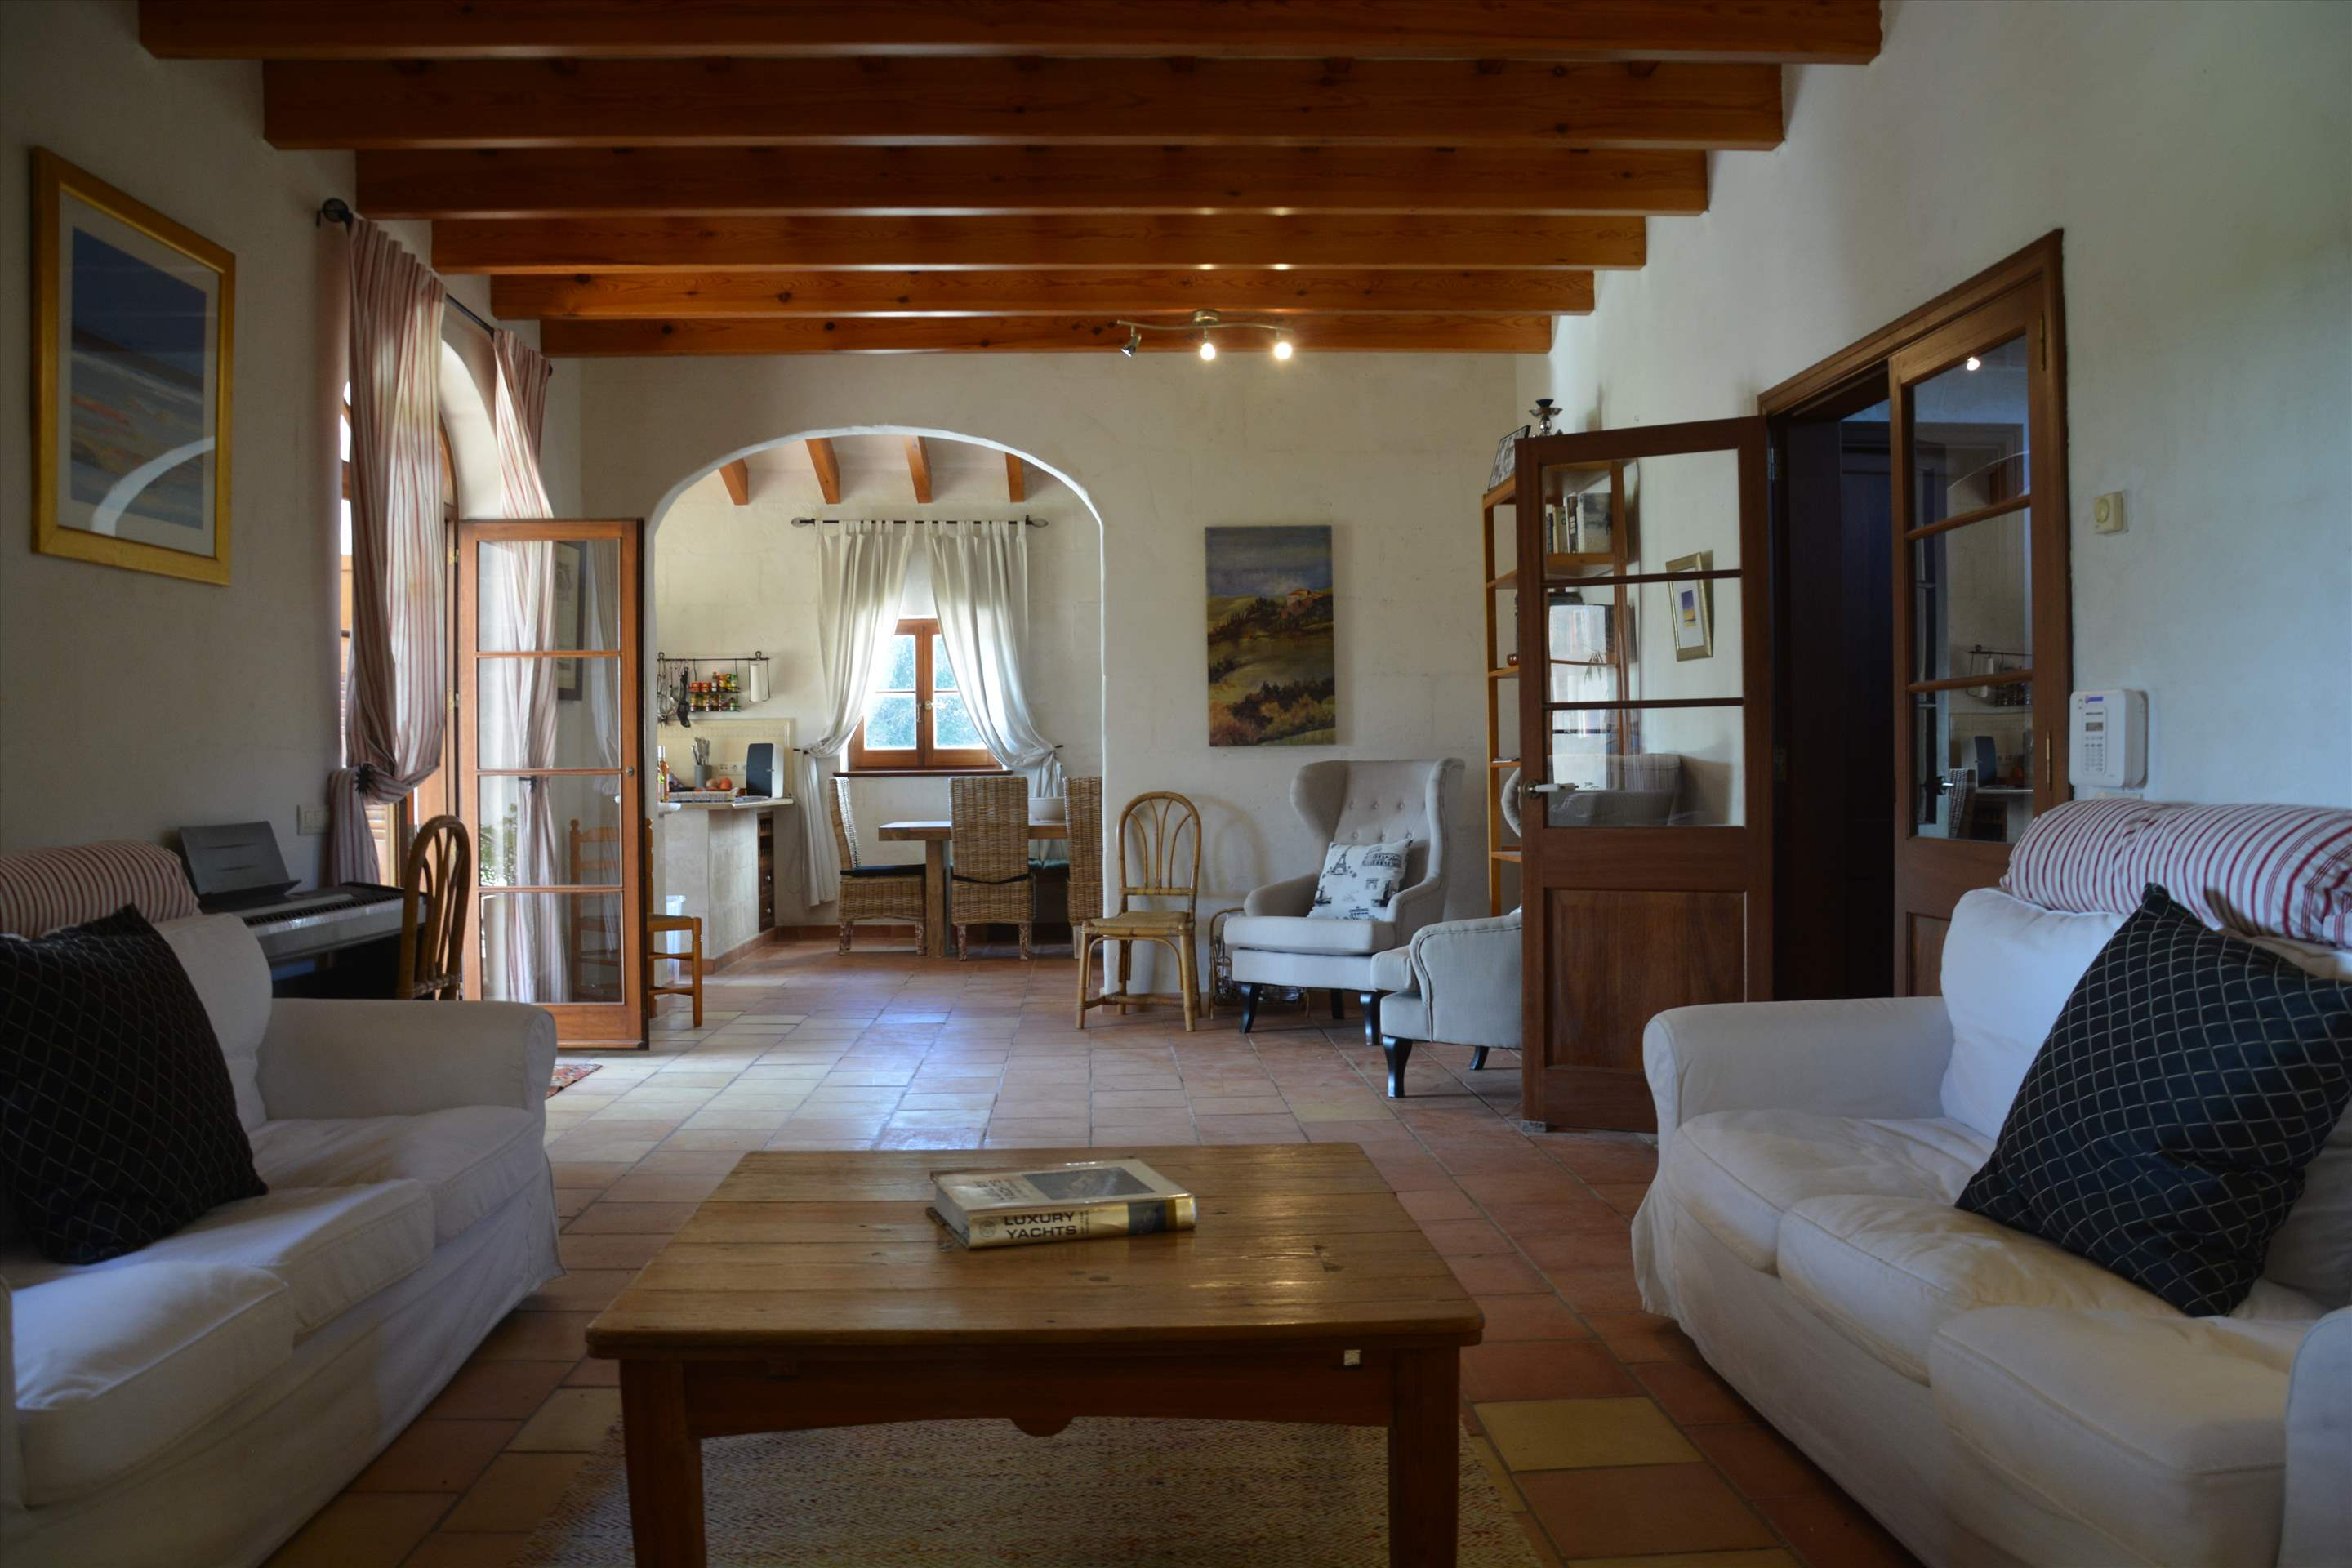 Les Arcs, 5 bedroom villa in Mahon, San Luis & South East, Menorca Photo #5